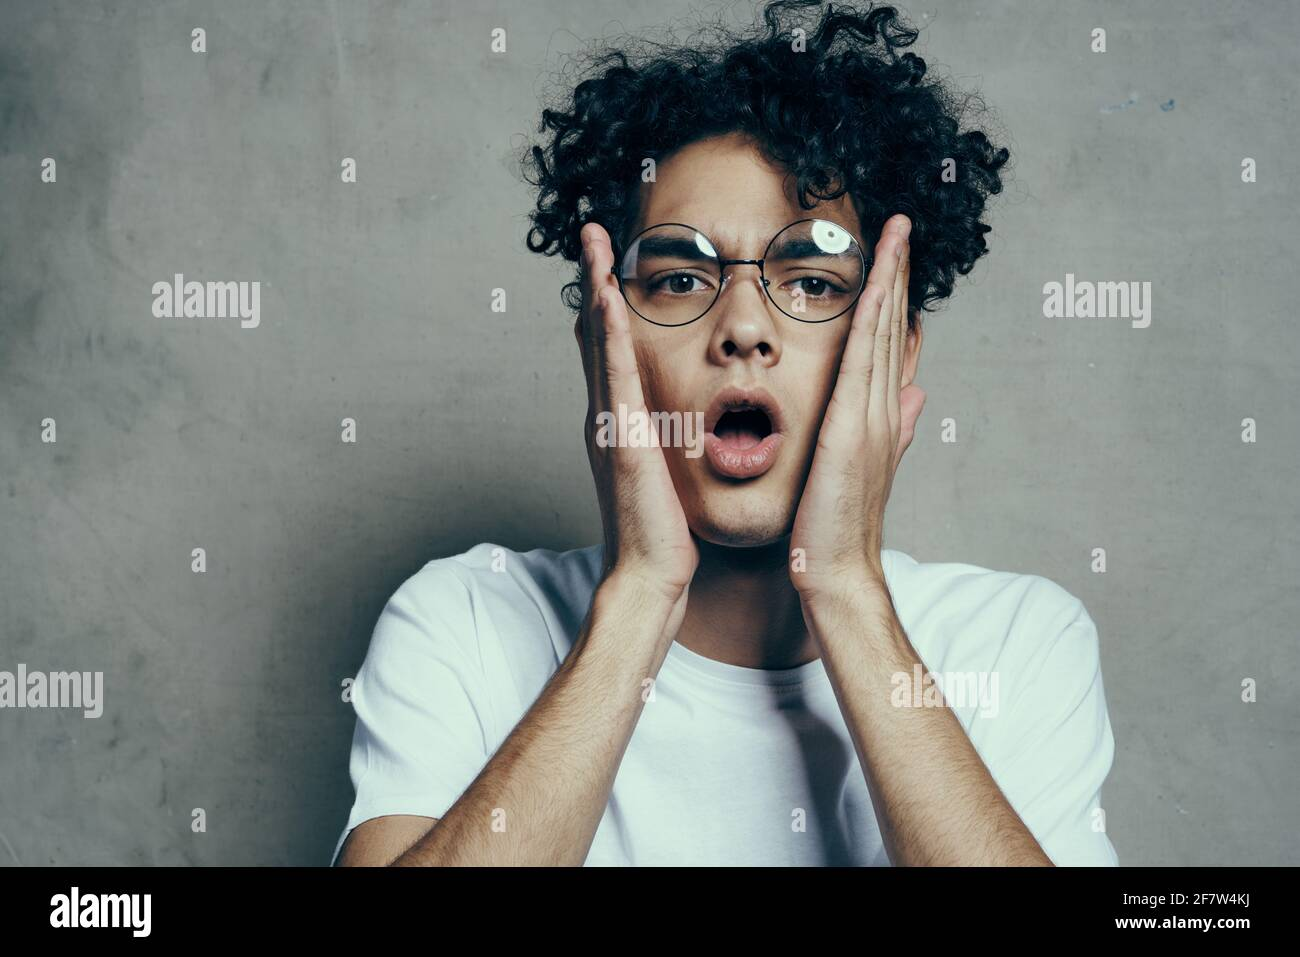 guy with curly hair emotions glasses fashion studio close-up Stock Photo